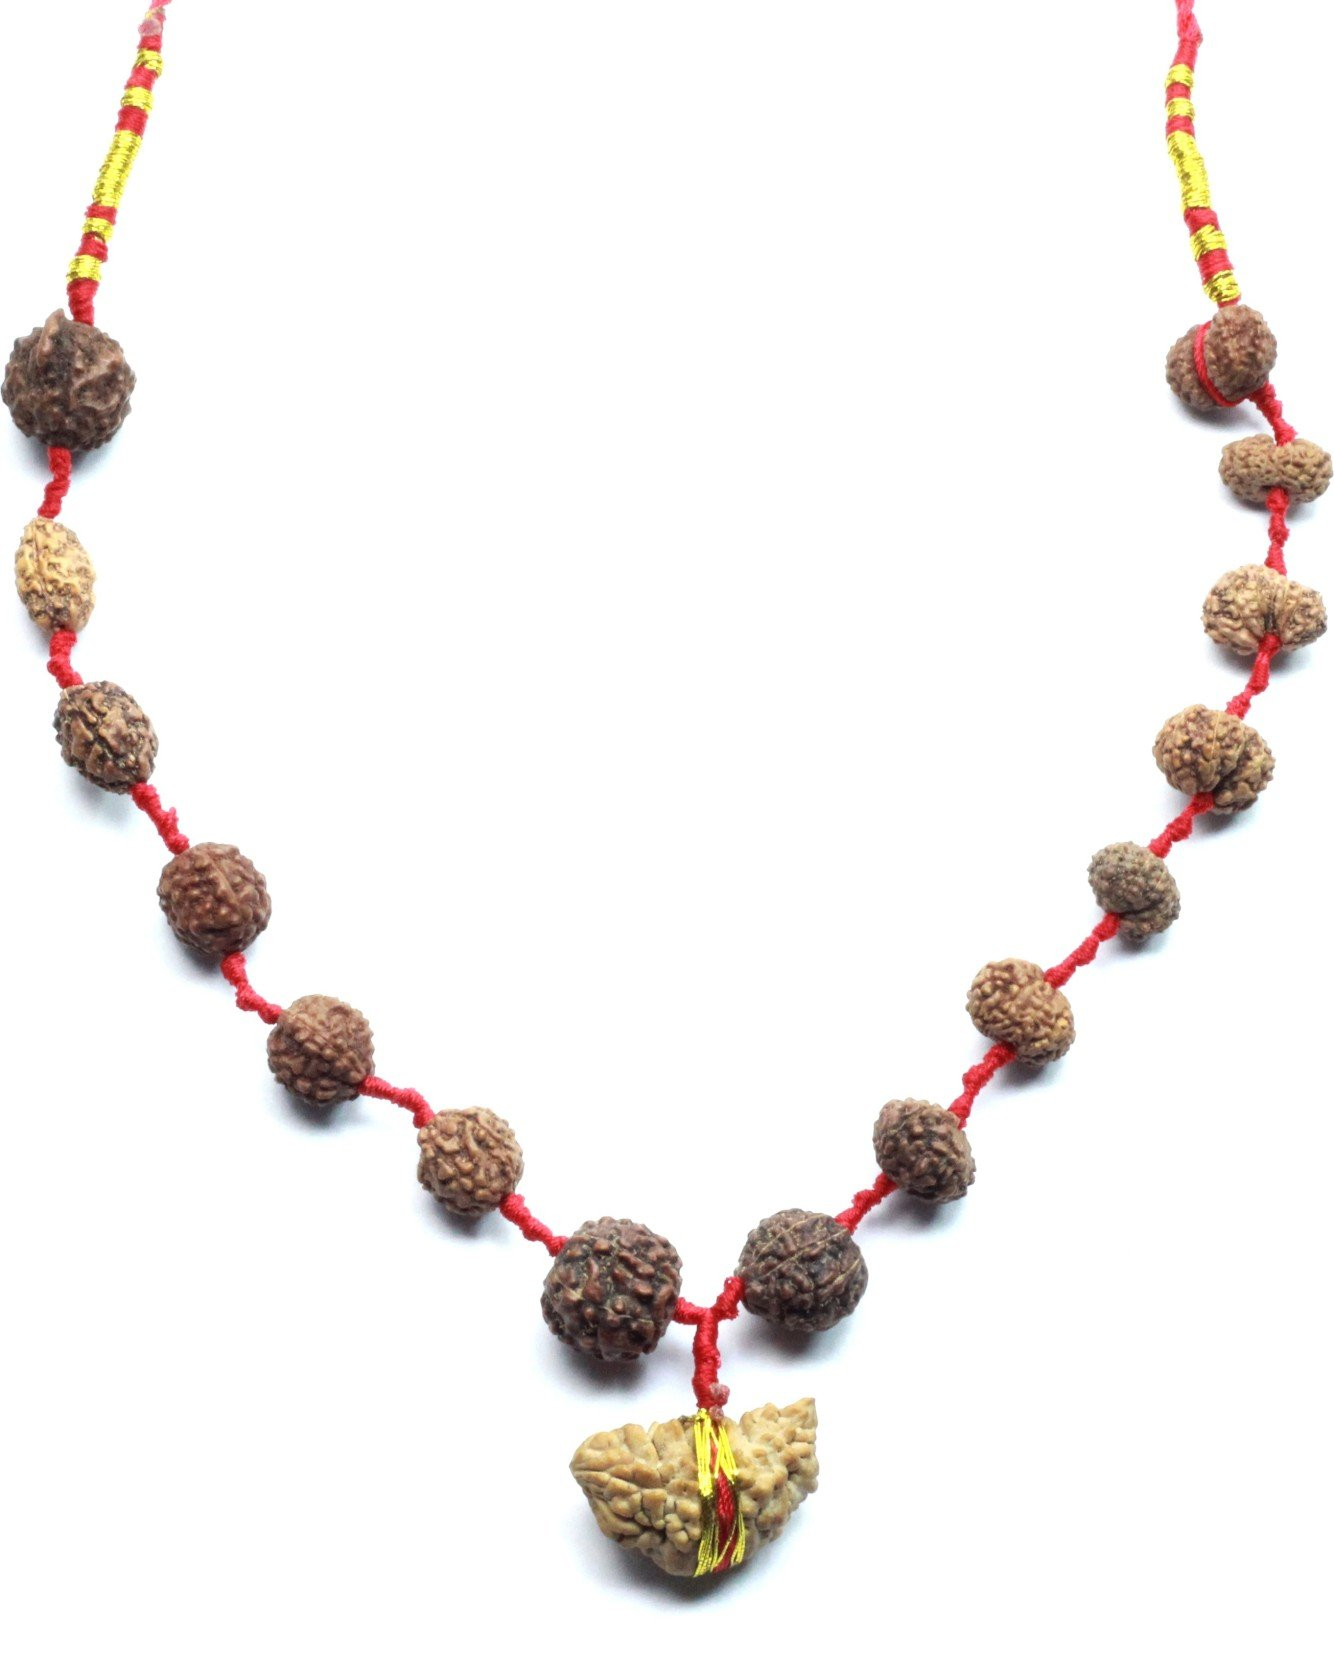 SHIVOHAM 7 Face//7 Mukhi Rudraksha From Nepal Silver Mounted with Certificate of Authenticity